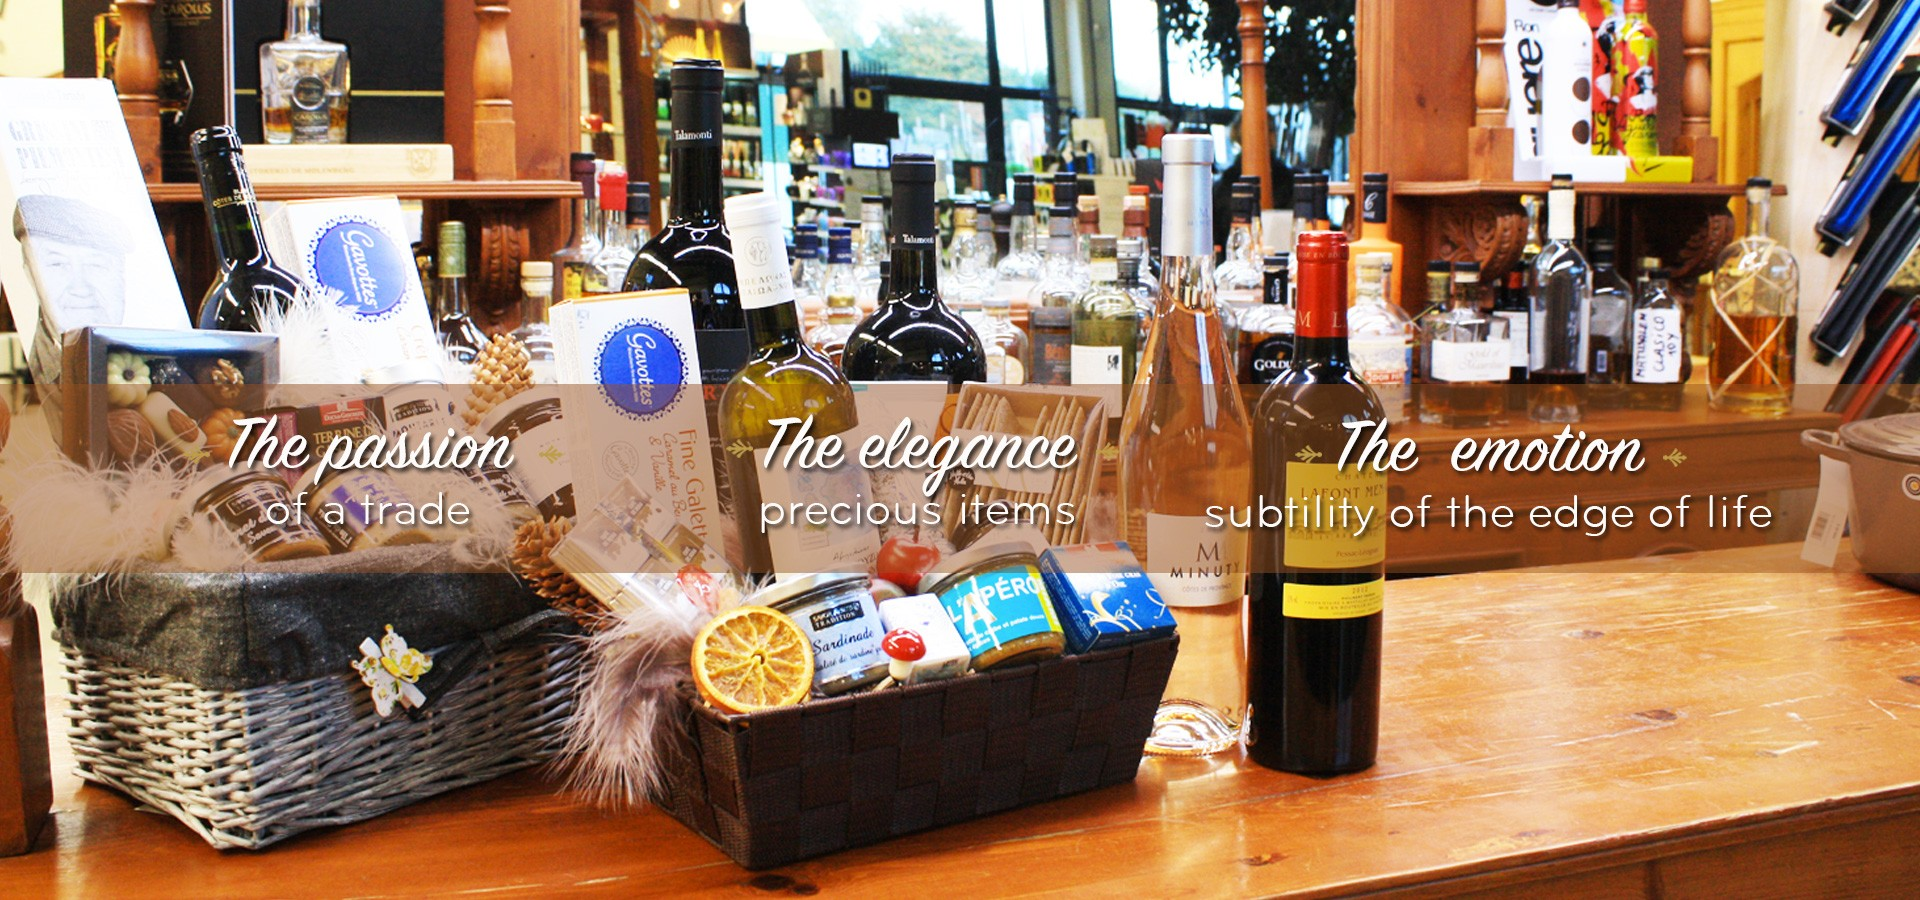 The Source - Wines and spirits - Delicacies - Tableware